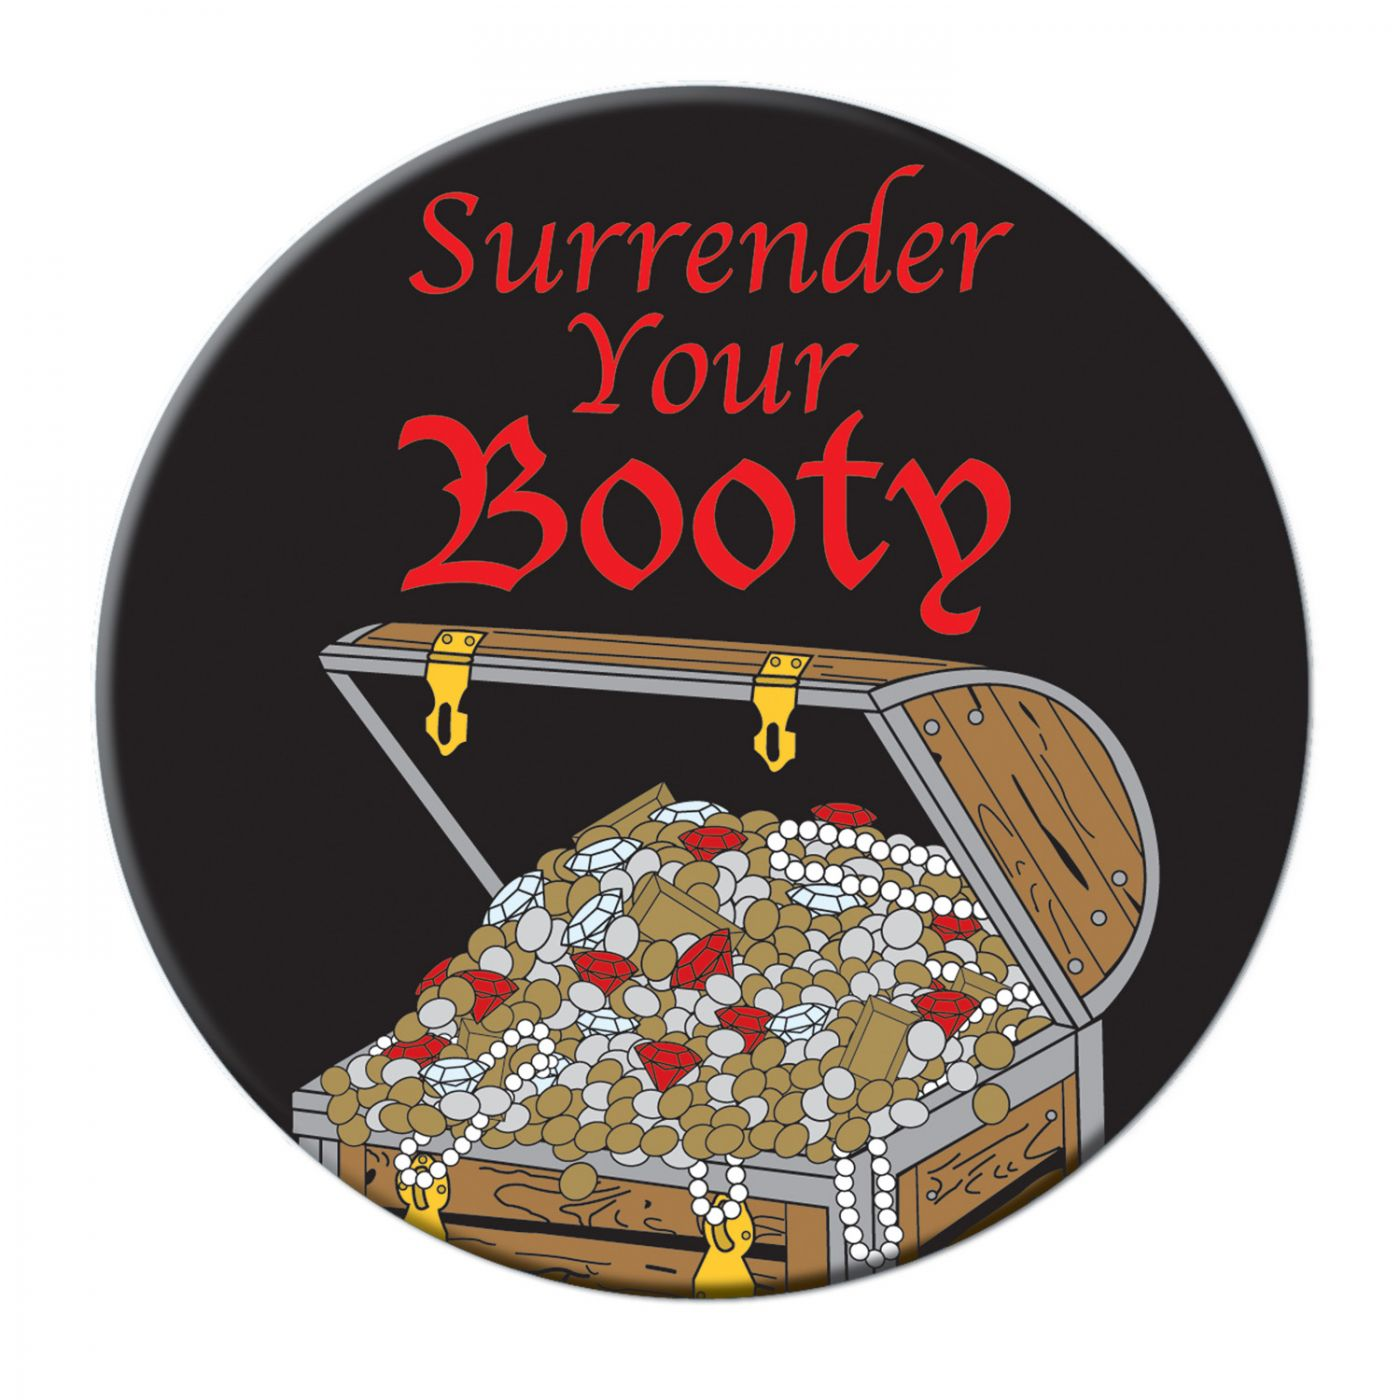 Surrender Your Booty Button image